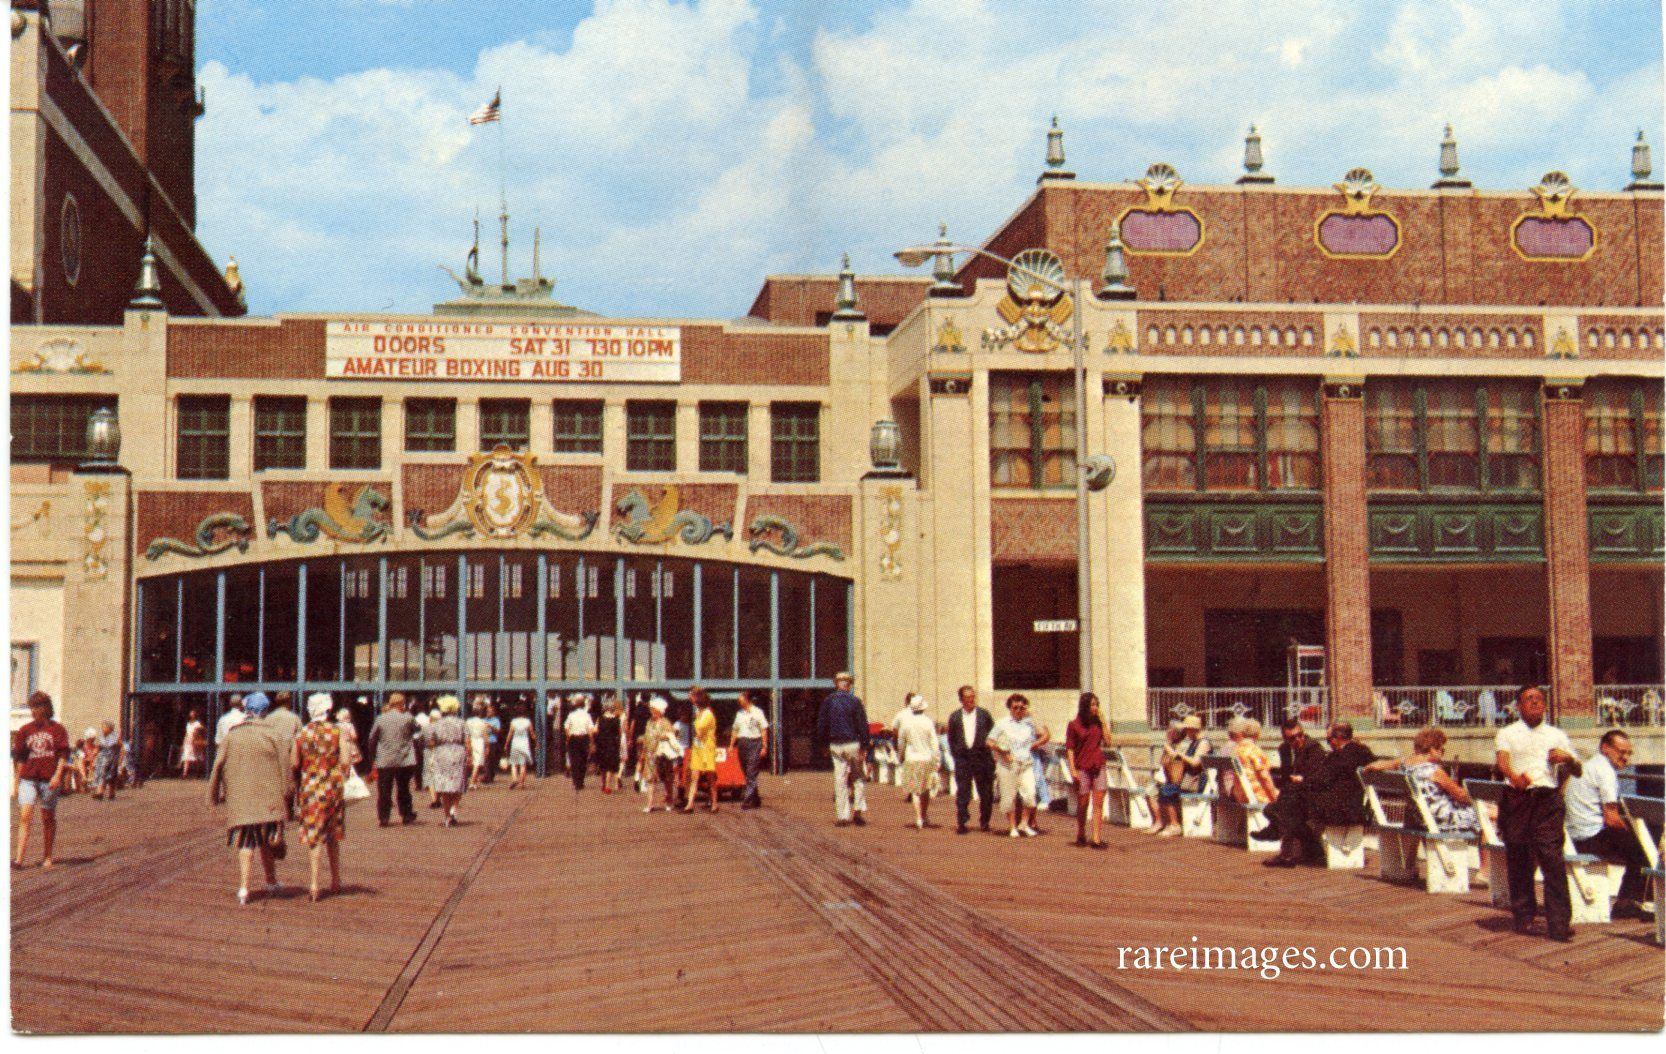 The Doors At Convention Center Asbury Park Nj C 1950 Asbury Park Nj Asbury Park Ocean Grove